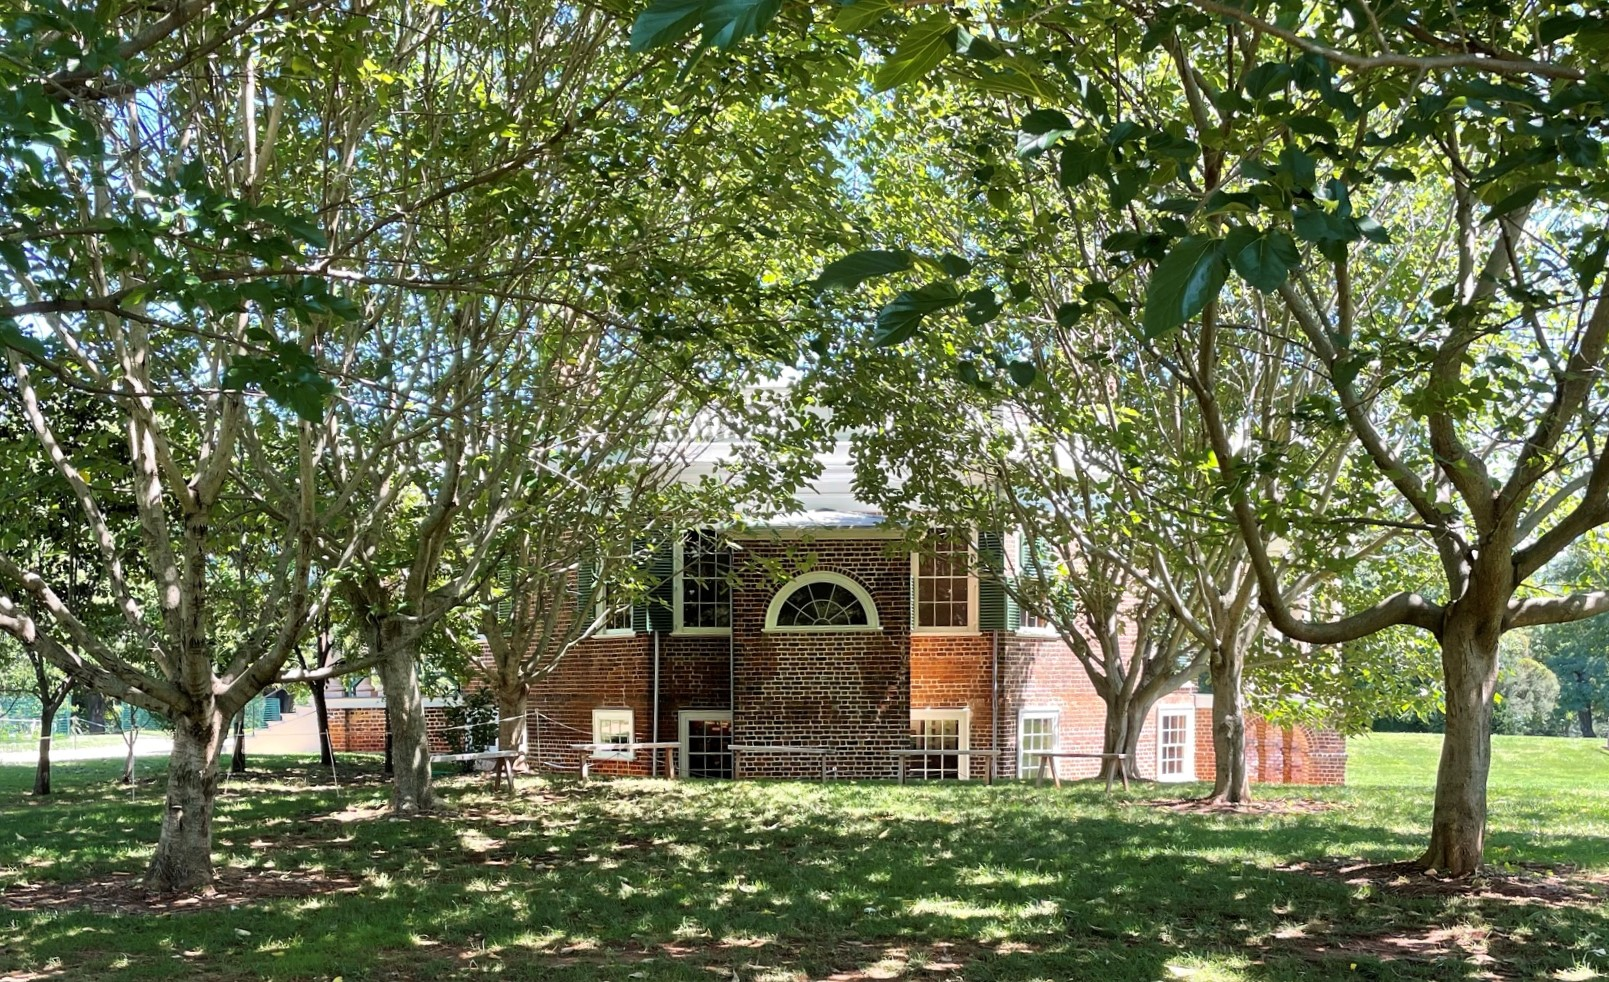 Touring Poplar Forest in Forest, VA - Thomas Jefferson's Summer Home